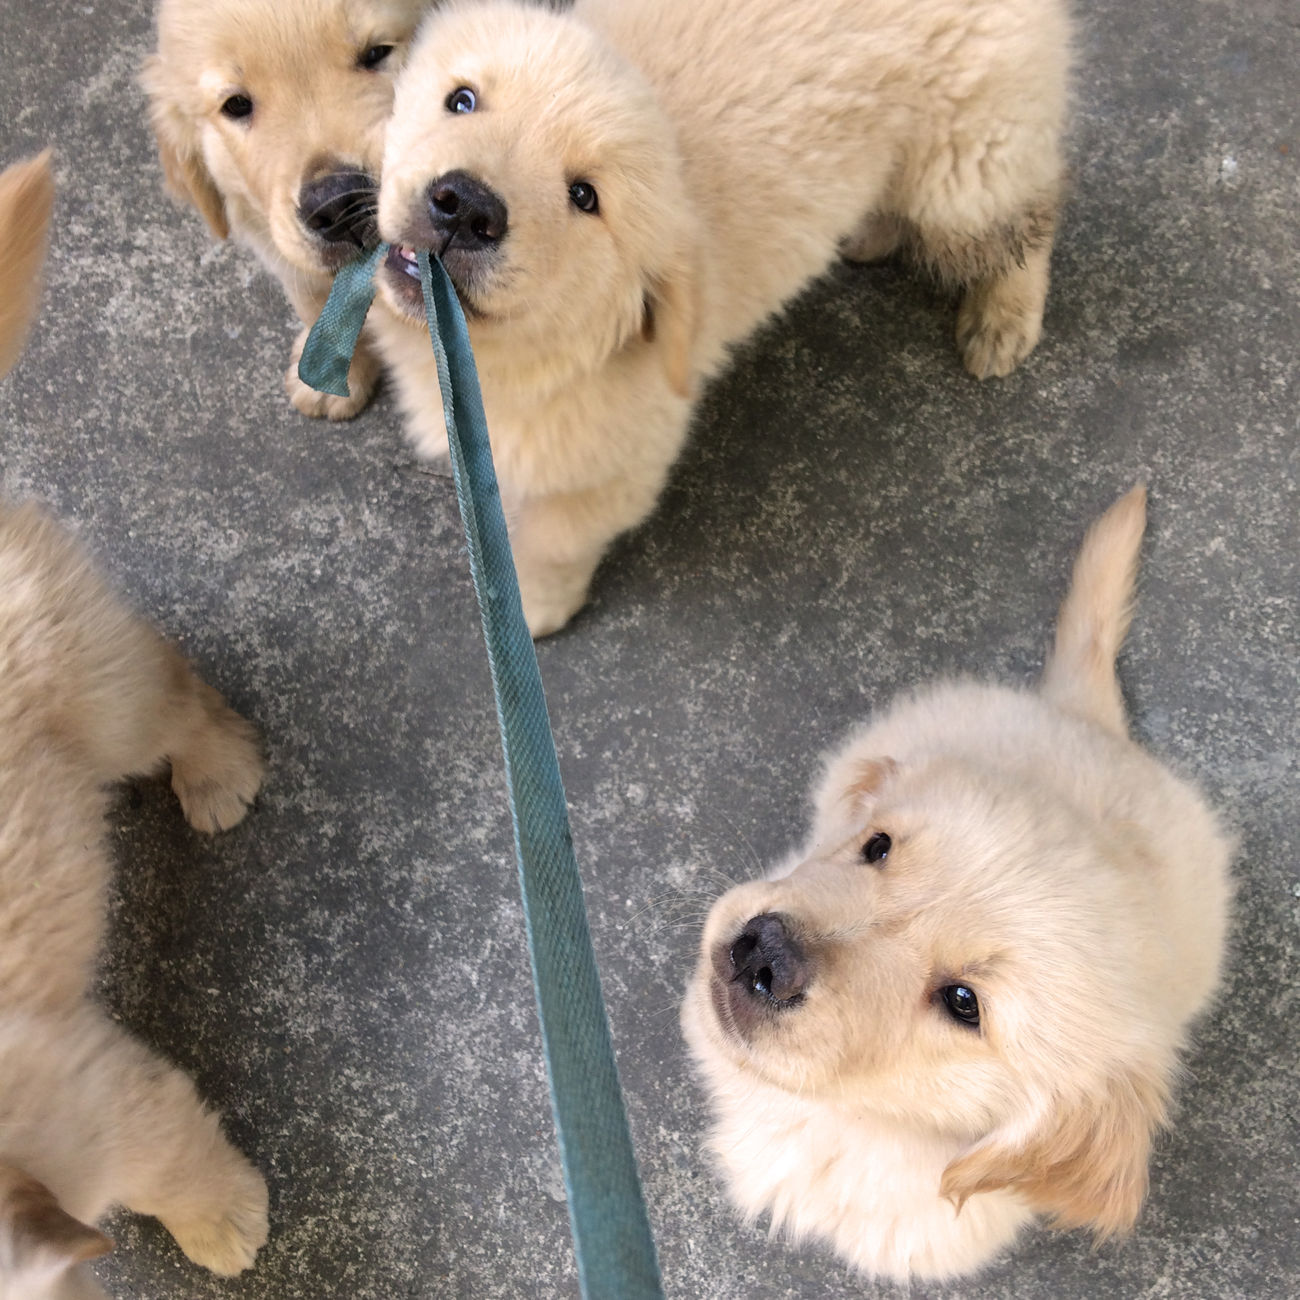 It's Mine Animal Themes Day Dog Domestic Animals Funny Golden Retriever Goldenretriever High Angle View Mammal No People One Animal Outdoors Pets Playing Puppies Puppy